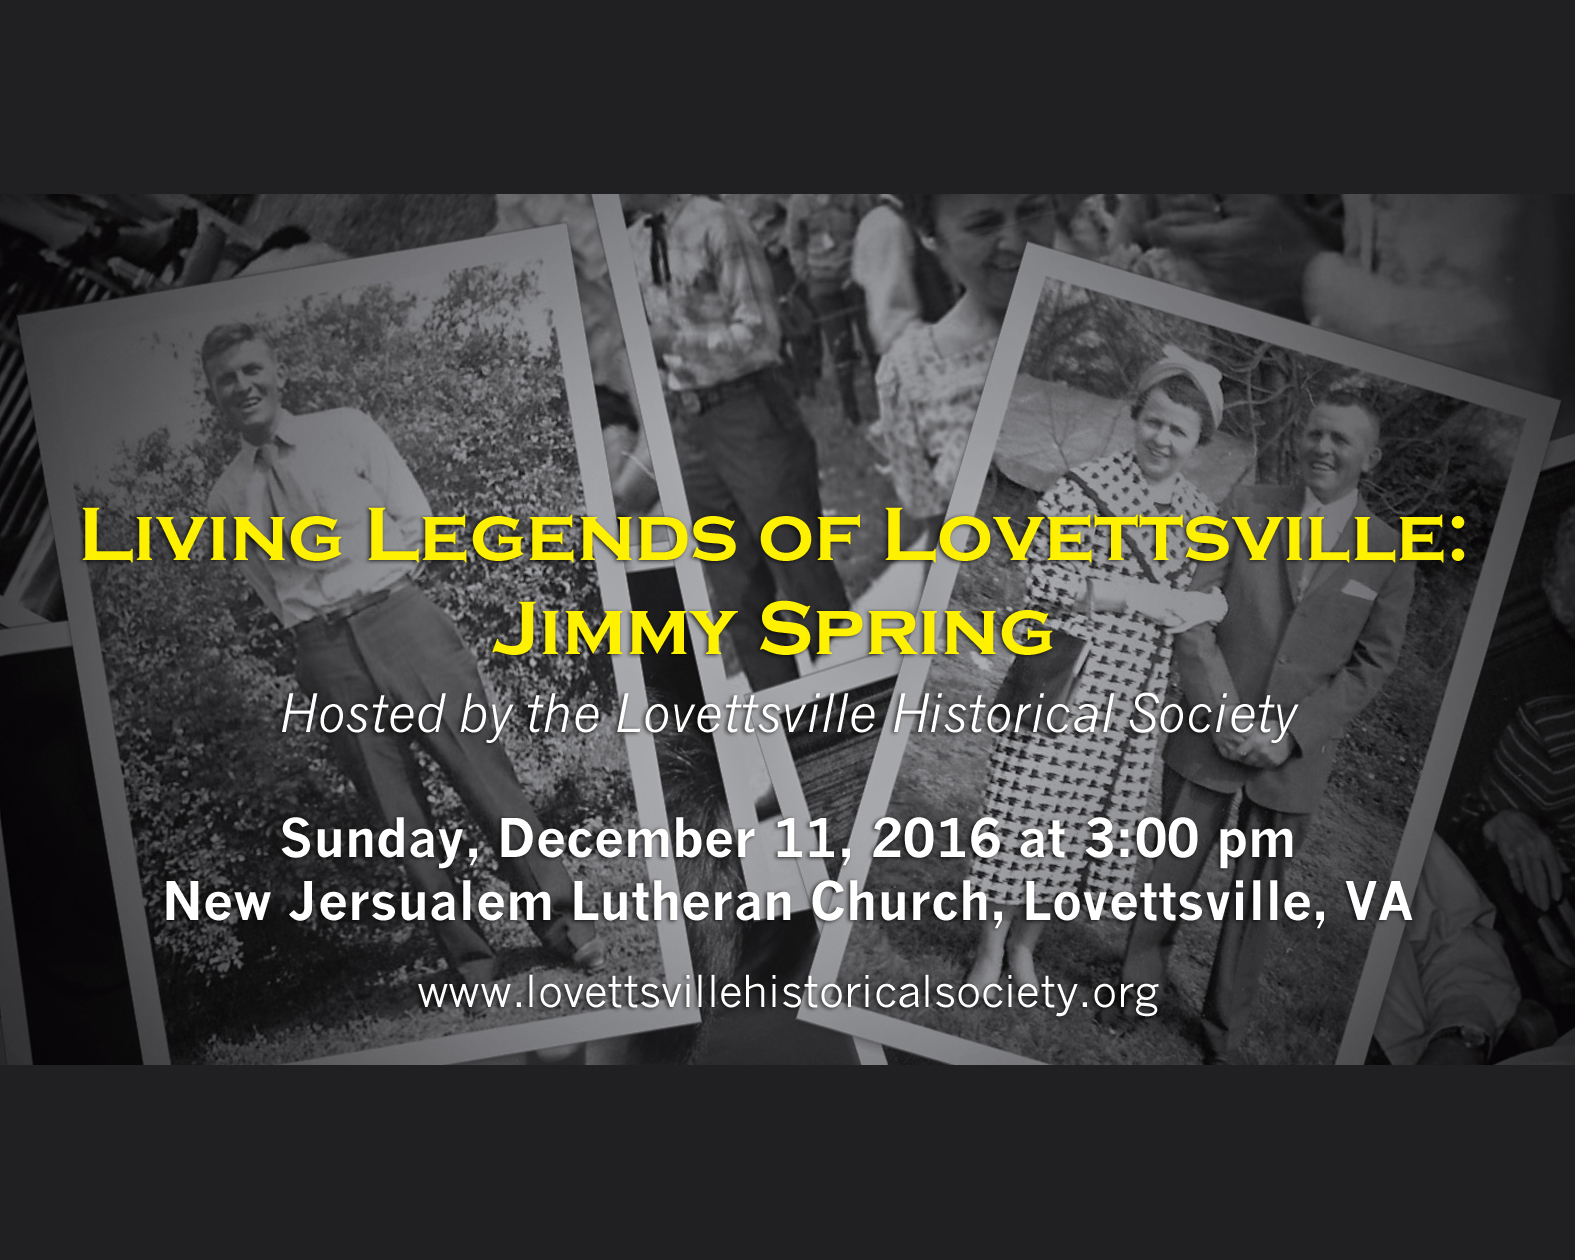 Jimmy Spring-Lovettsville Living Legend